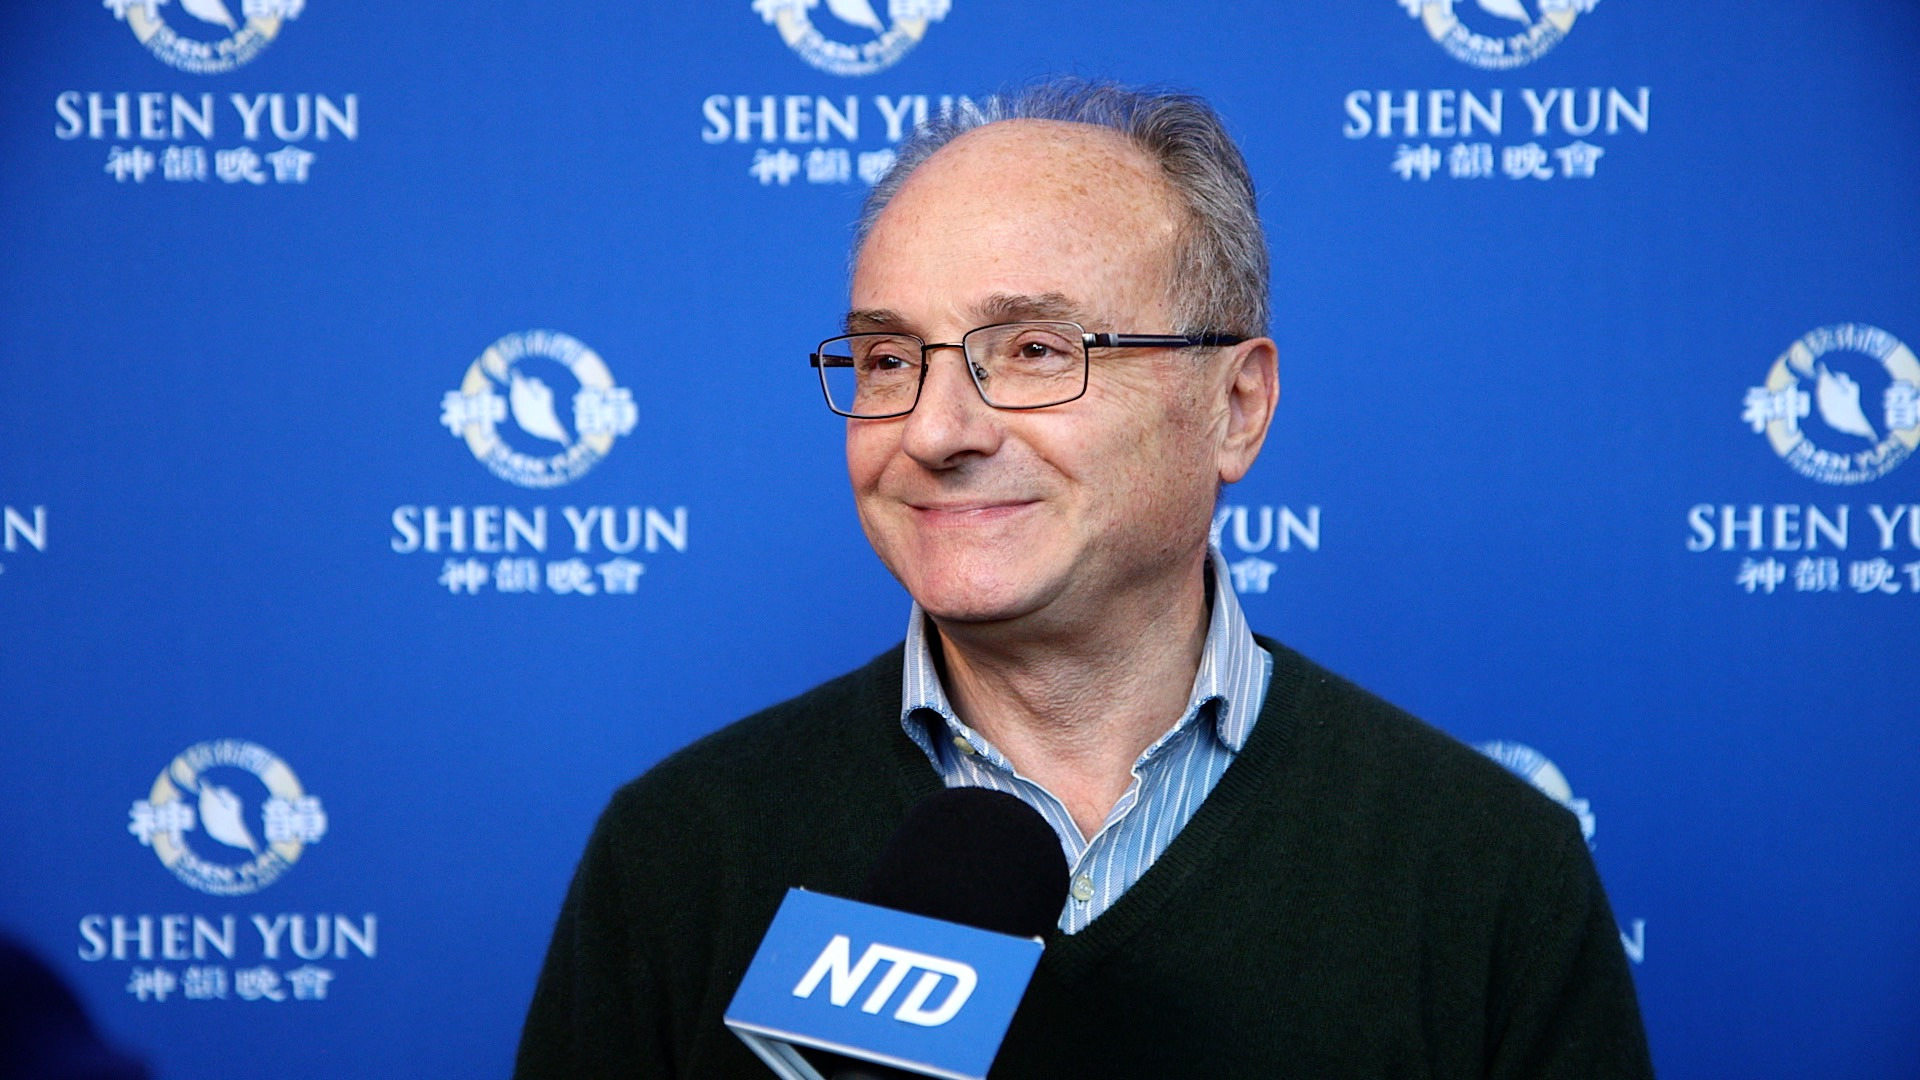 Former Consul General: Shen Yun Artists Are the Real Ambassadors of Chinese Culture